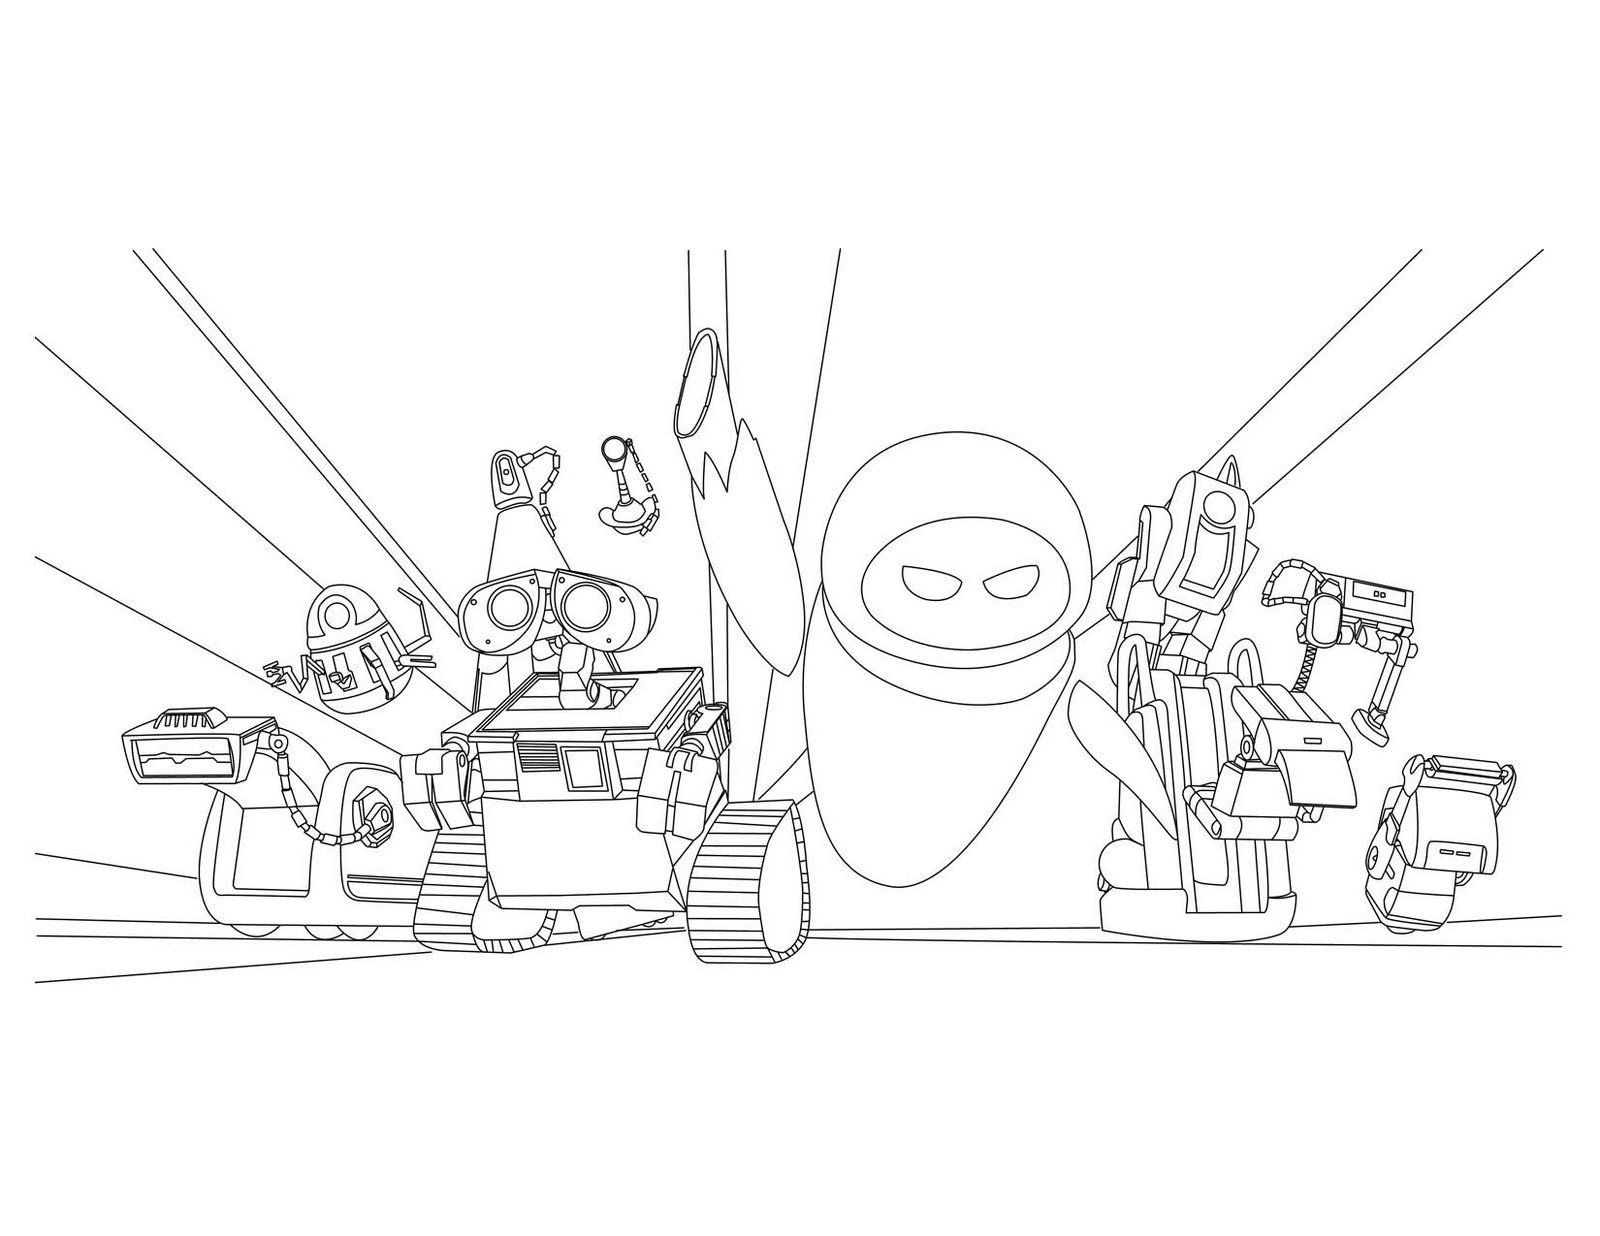 Wall E Coloring Pages To Download And Print For Free